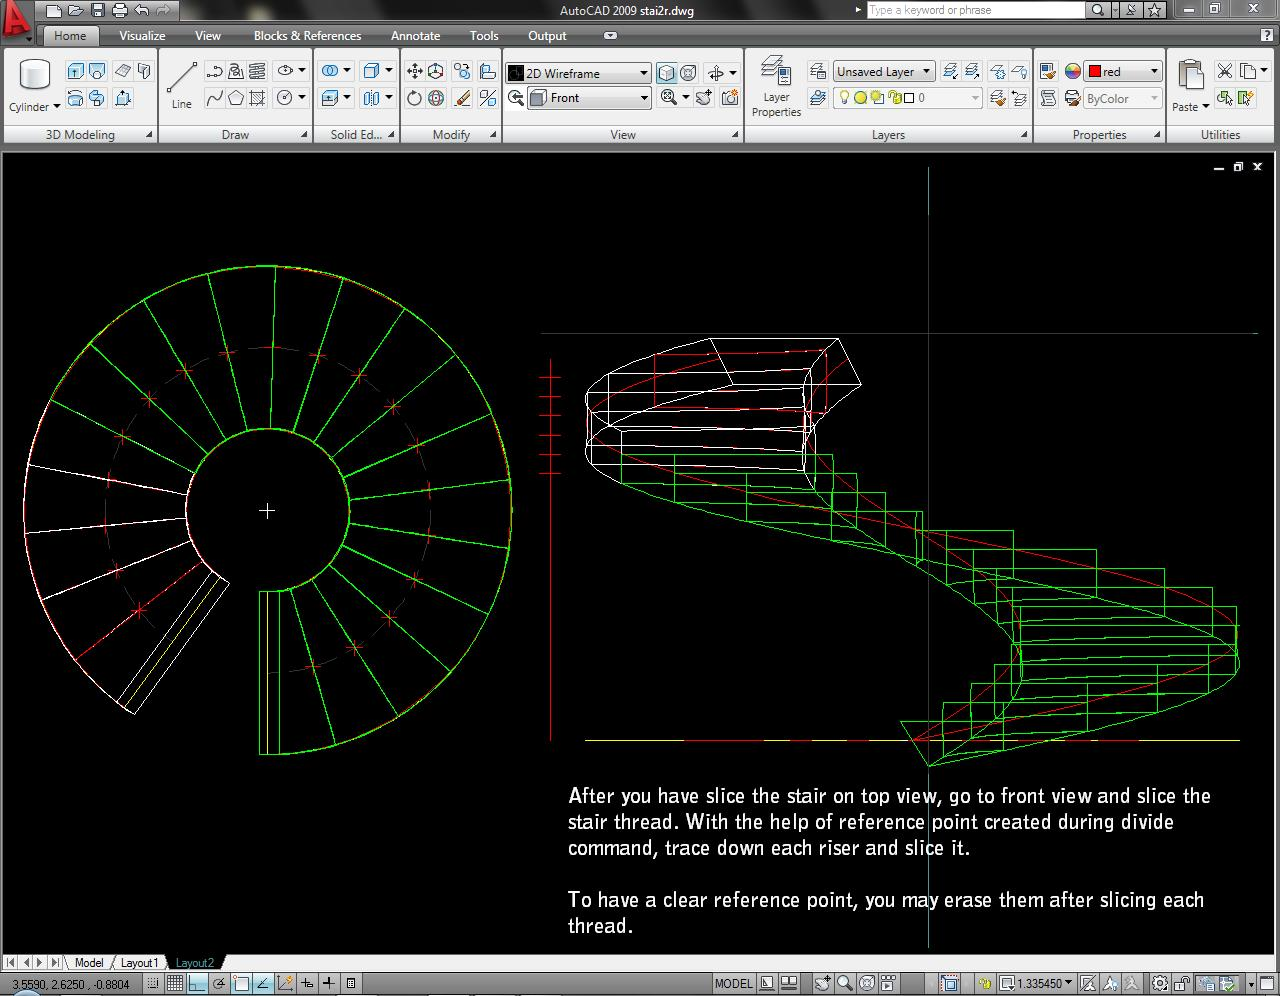 Drawn stairs autocad 3d Step Modelling) 1 stair Spiral